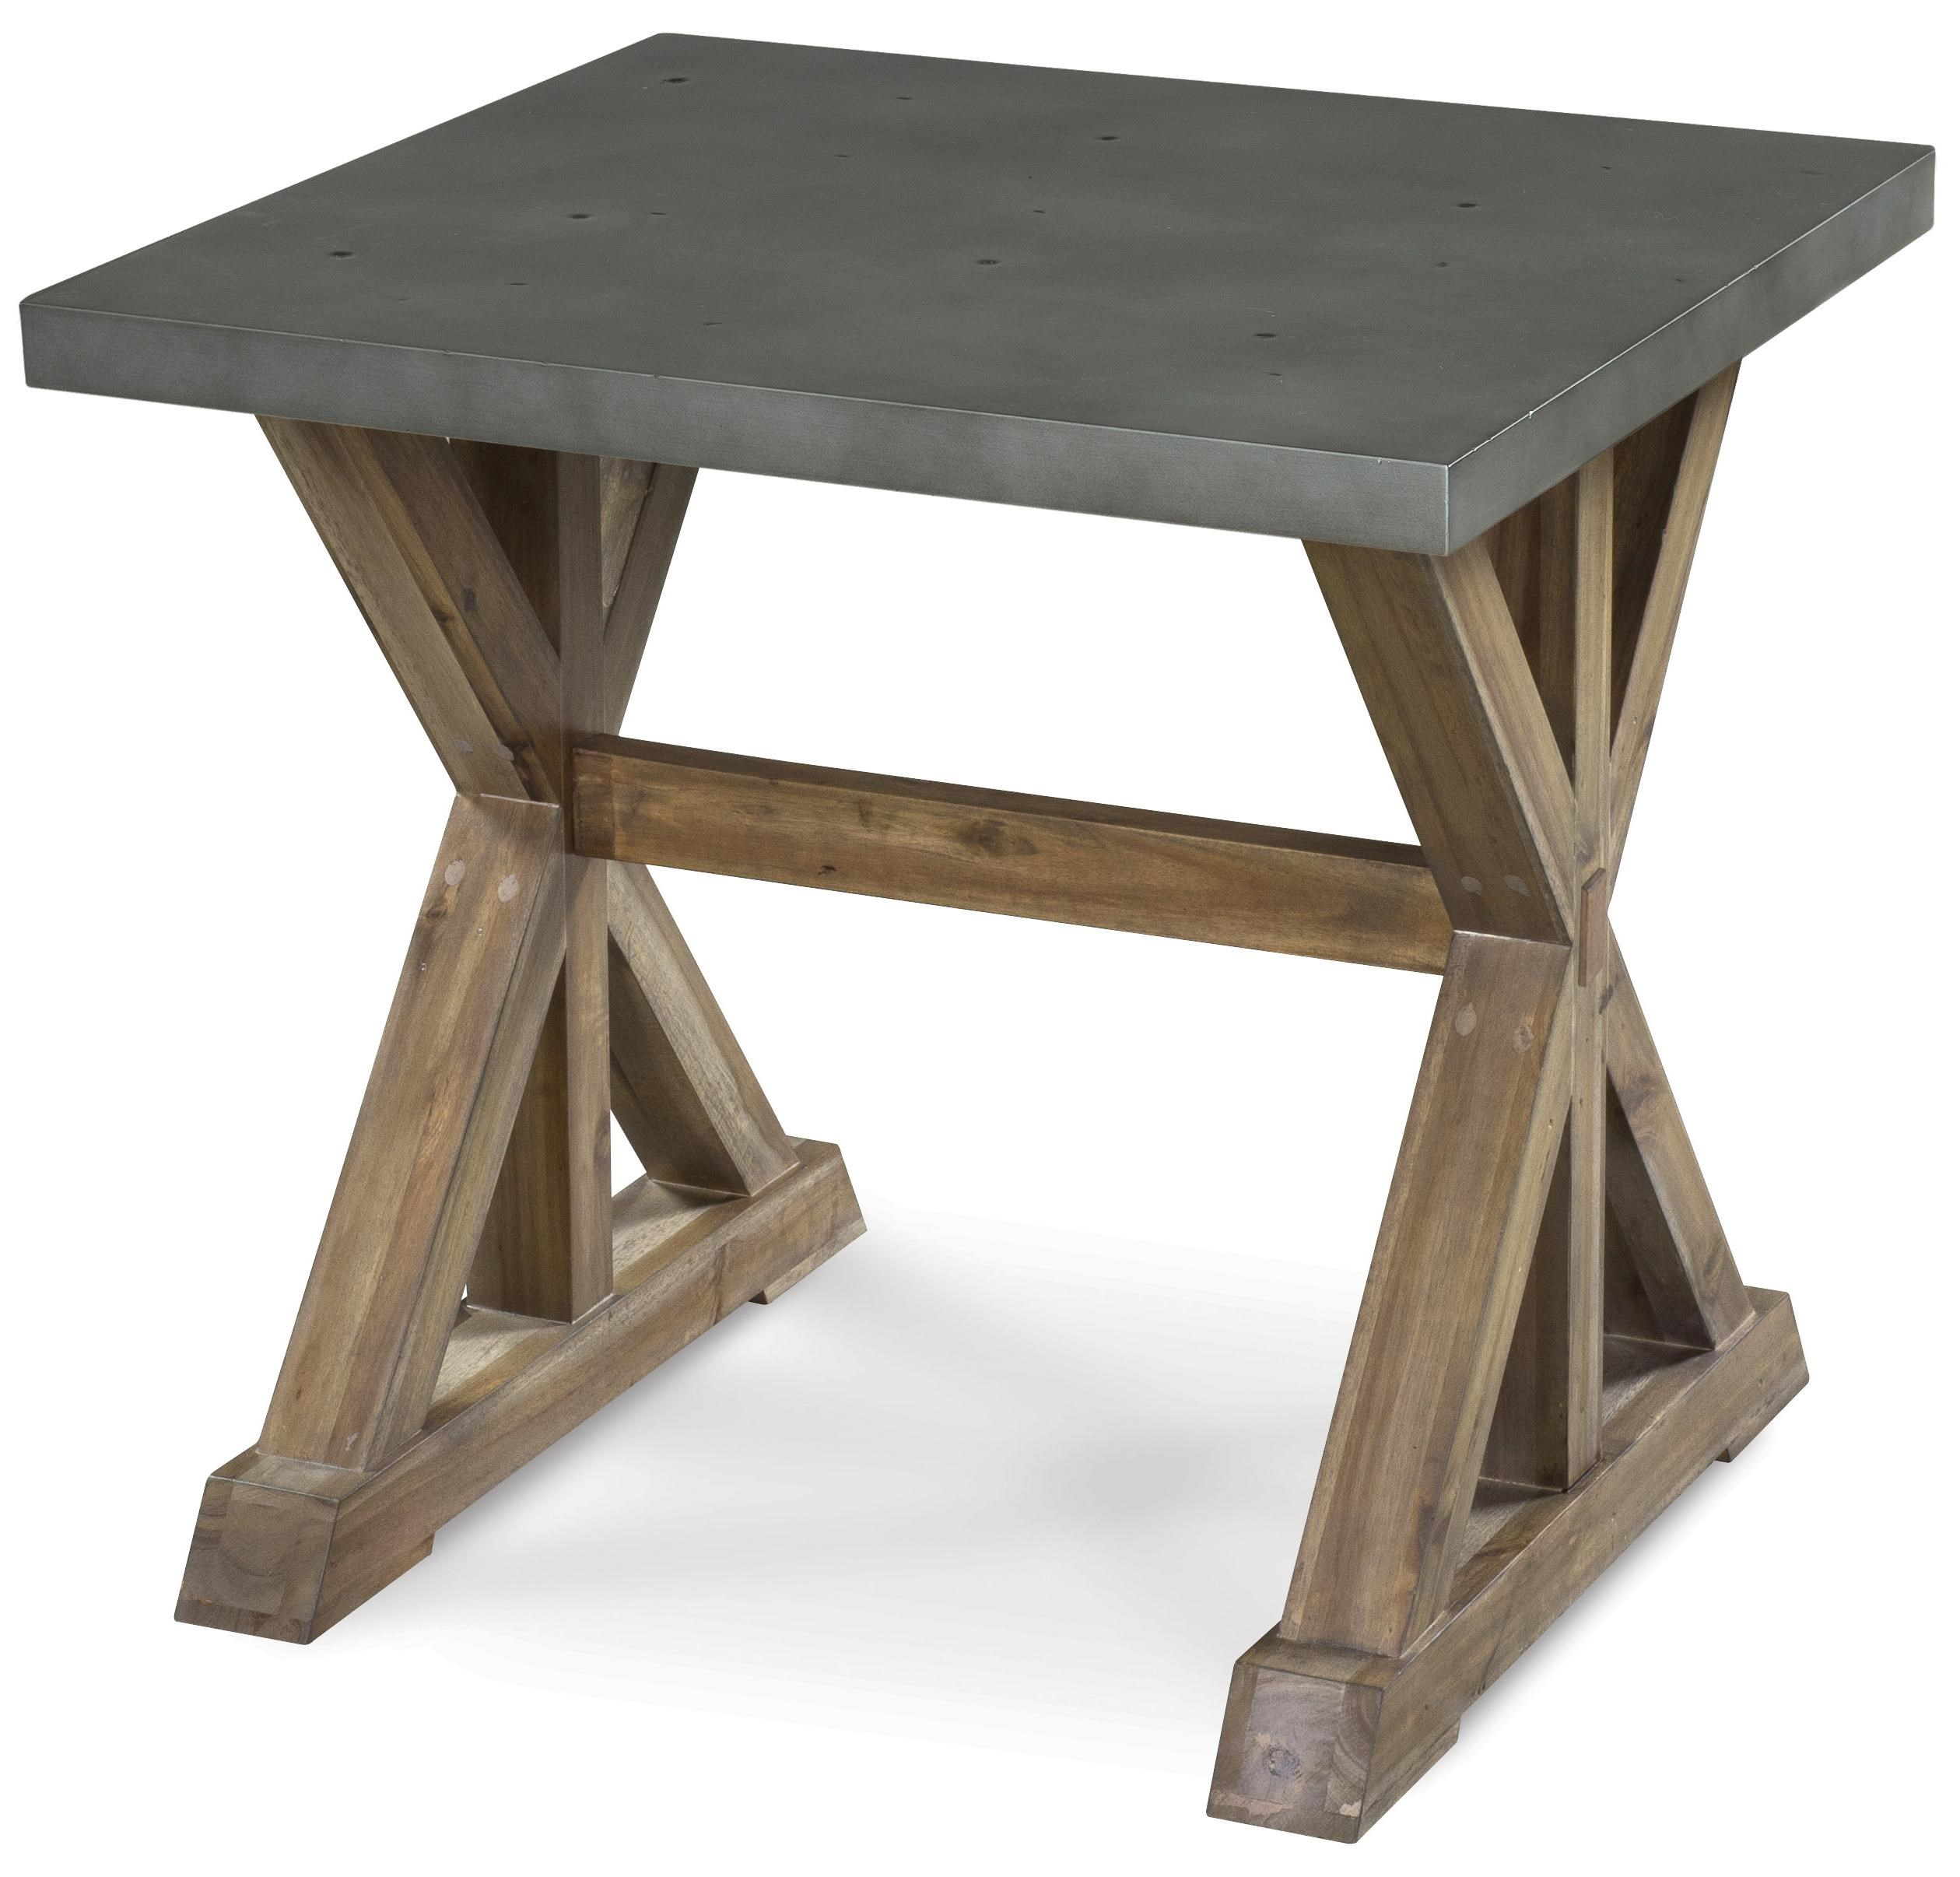 Magnussen Home LybrookRectangular End Table